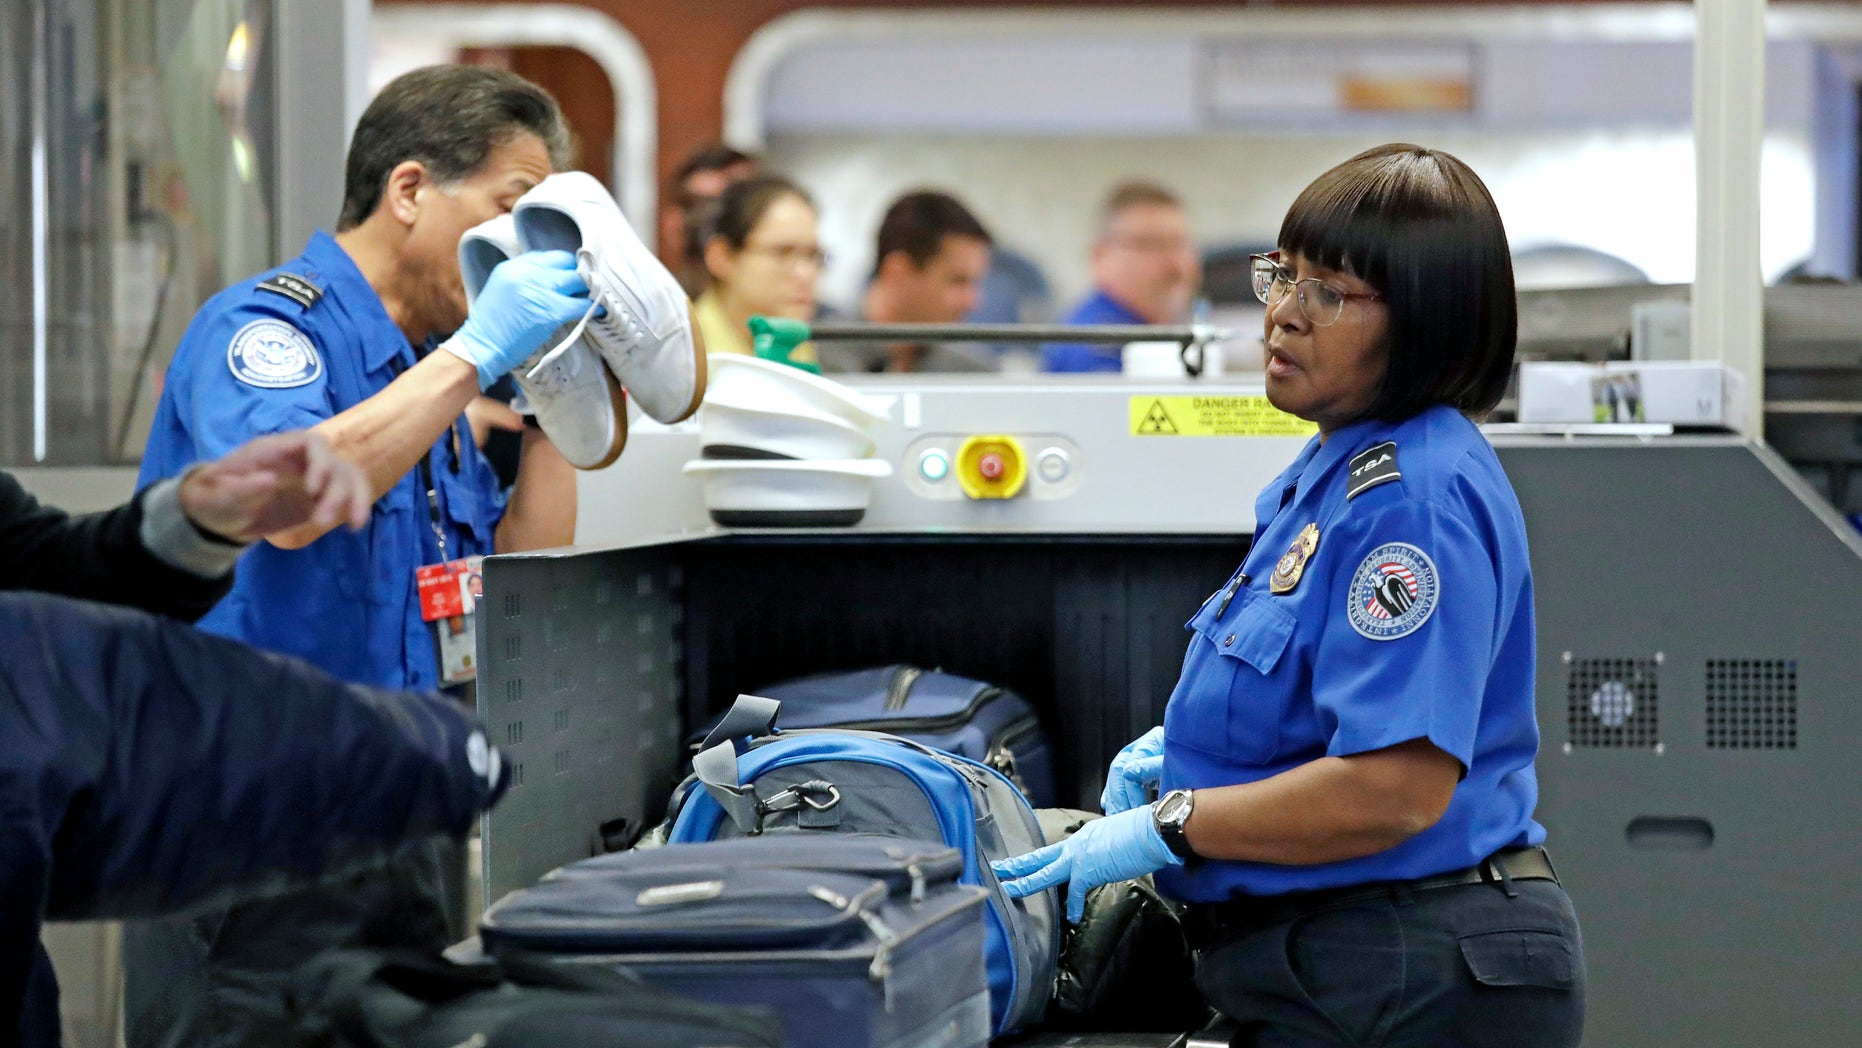 Transportation Security Administration (TSA) officers assist travelers with luggage through a security screening area during a partial federal government shutdown Monday, Dec. 31, 2018, at Seattle-Tacoma International Airport in Washington state. (Associated Press)